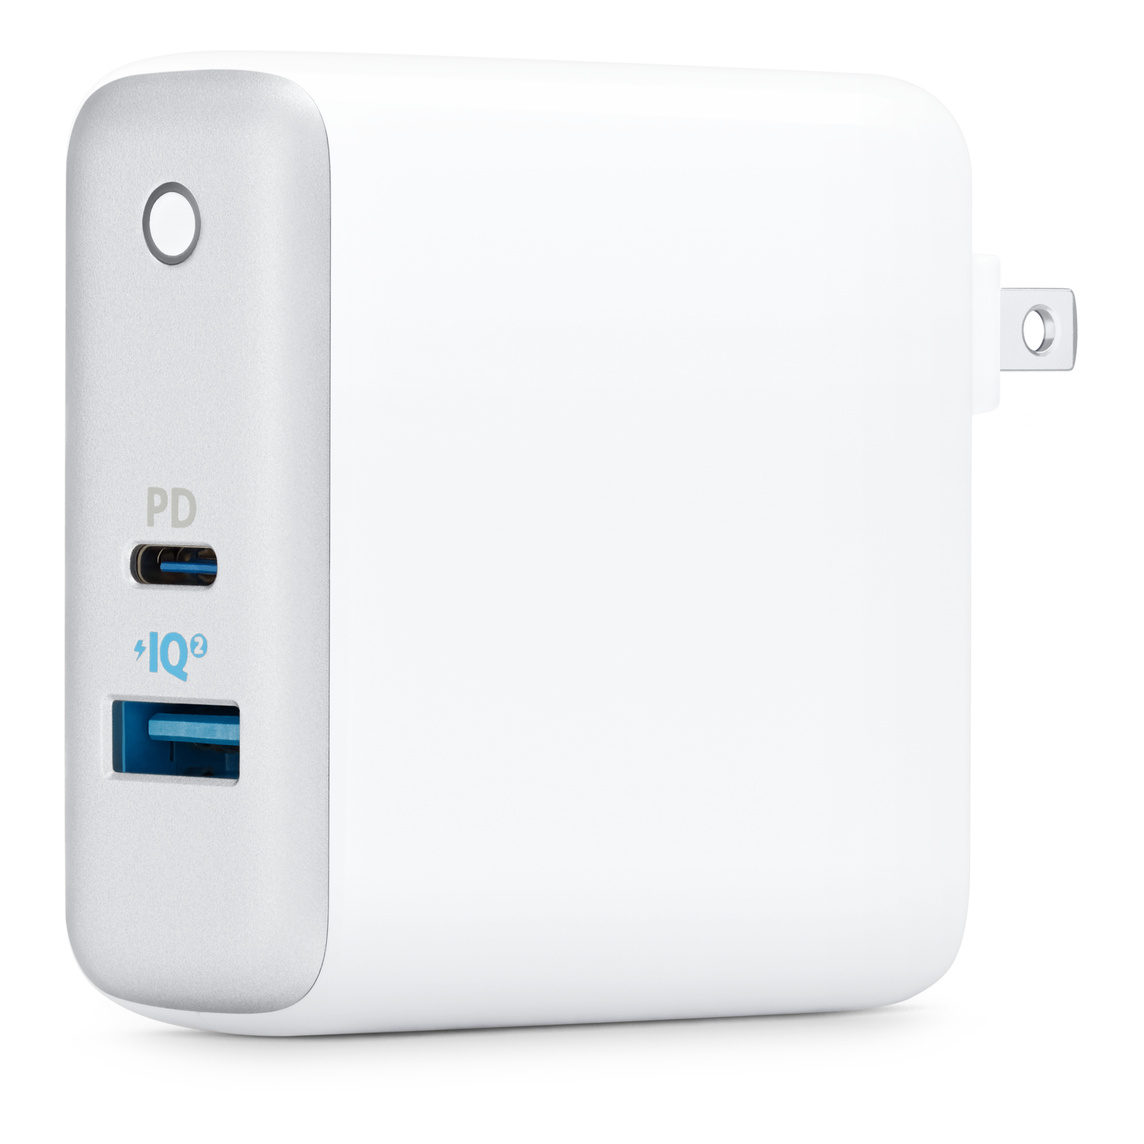 Anker PowerPort II PD 2 Port USB Wall Charger with USB C Cable